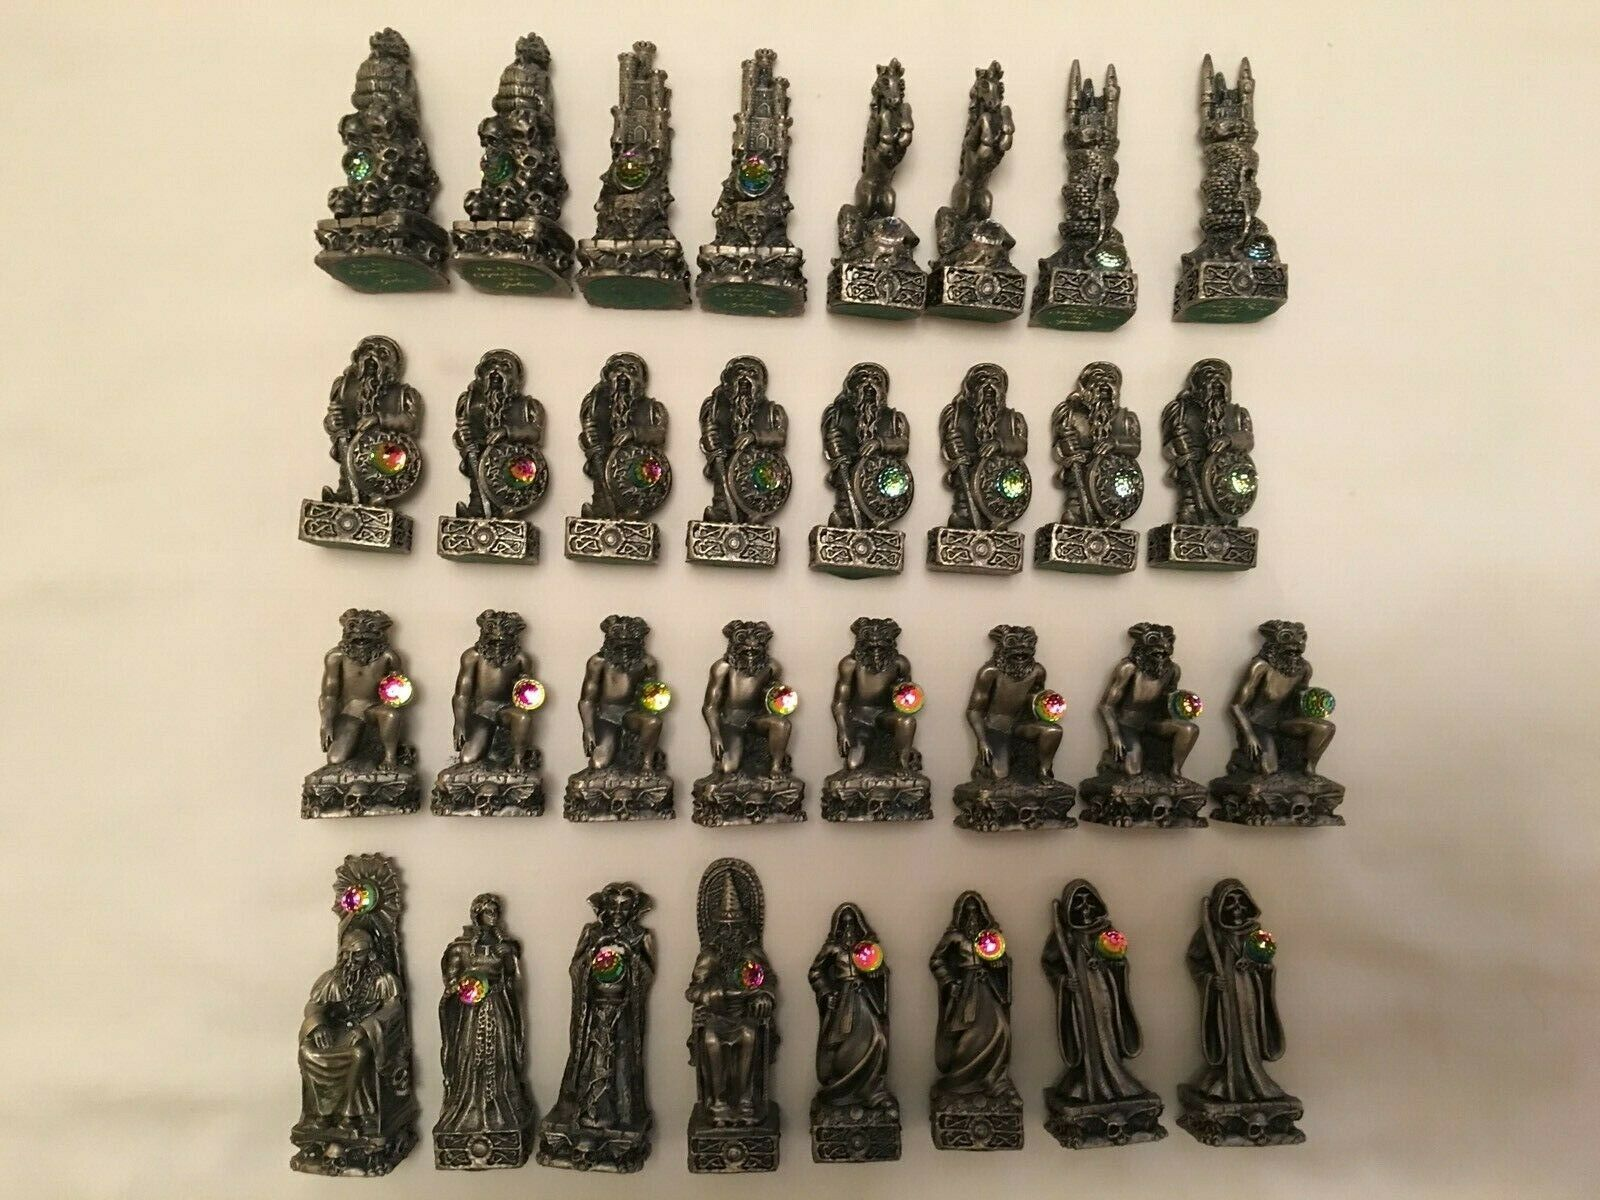 32 piece THE MAGIC CRYSTAL CHESS SET by GORHAM - Pewter w  crystals